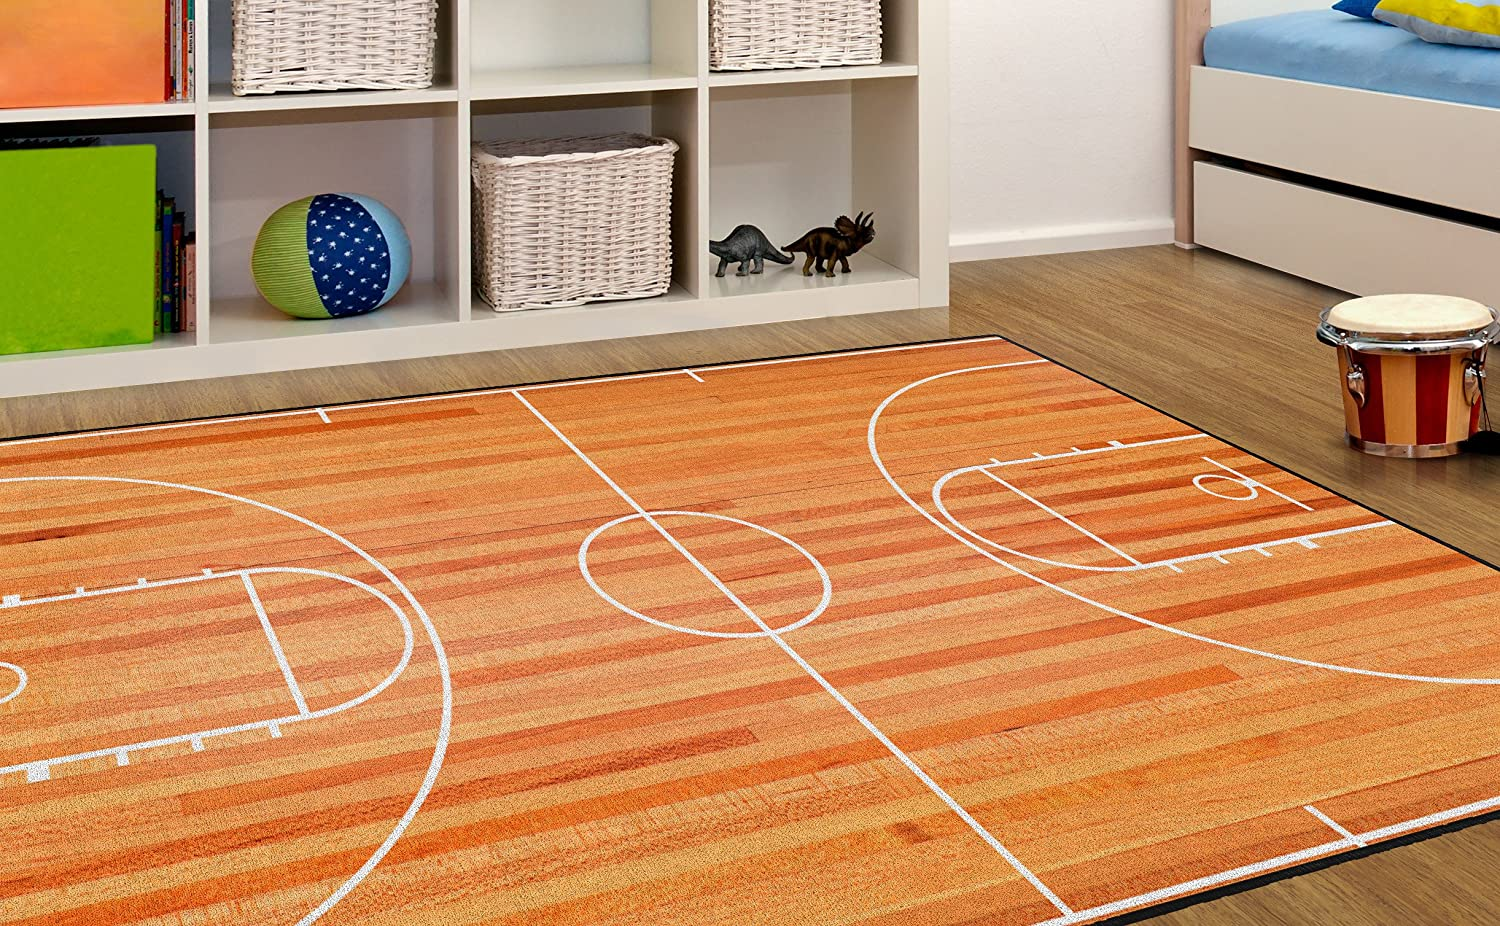 """Brumlow MILLS Basketball Court Sports Theme Area Rug for Teens Bedroom, Kids Playroom or Classroom Accent Rug, 3'4"""" x 5' (EW10162-40x60)"""